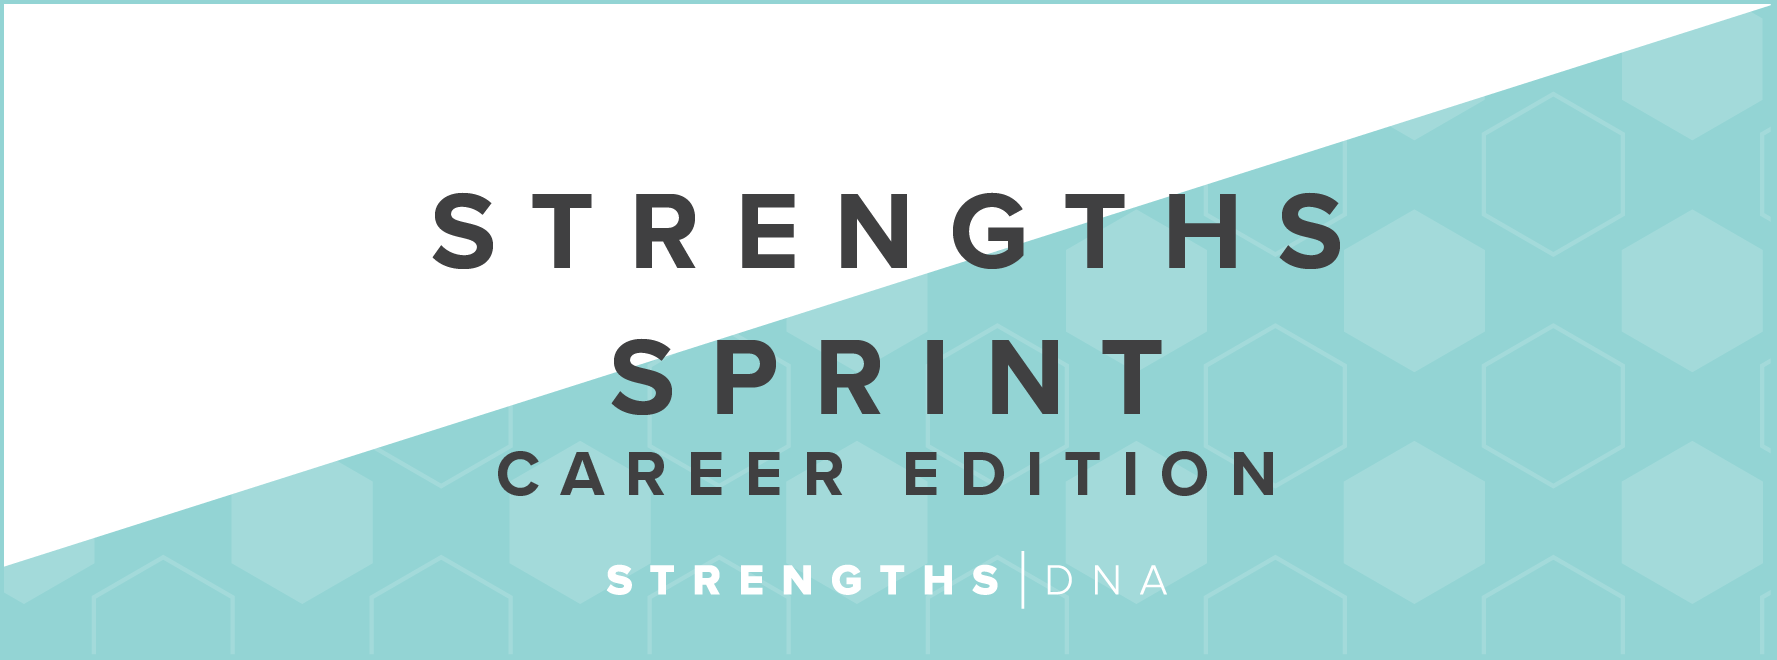 Strengths Sprint Career Edition Private Coaching - http://strengthsdna.com/strengths-sprint-career-edition